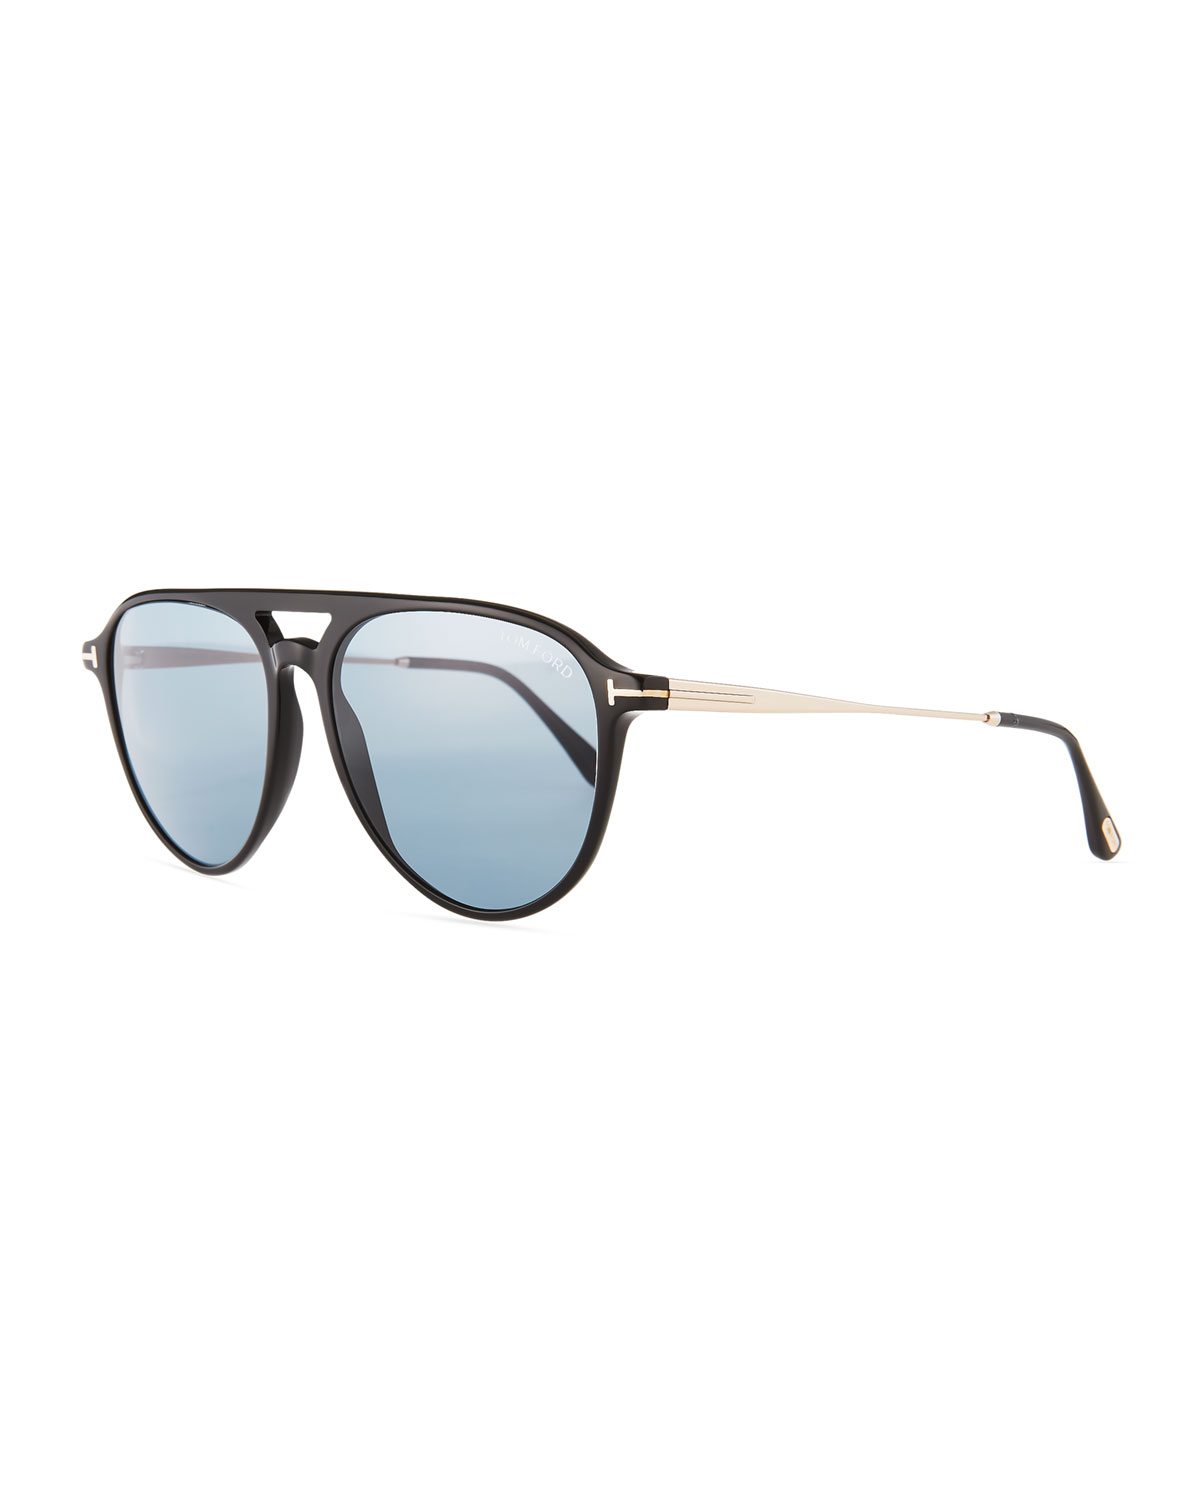 1b7efa065d7 TOM FORD Carlo Acetate-and-Metal Aviator Sunglasses